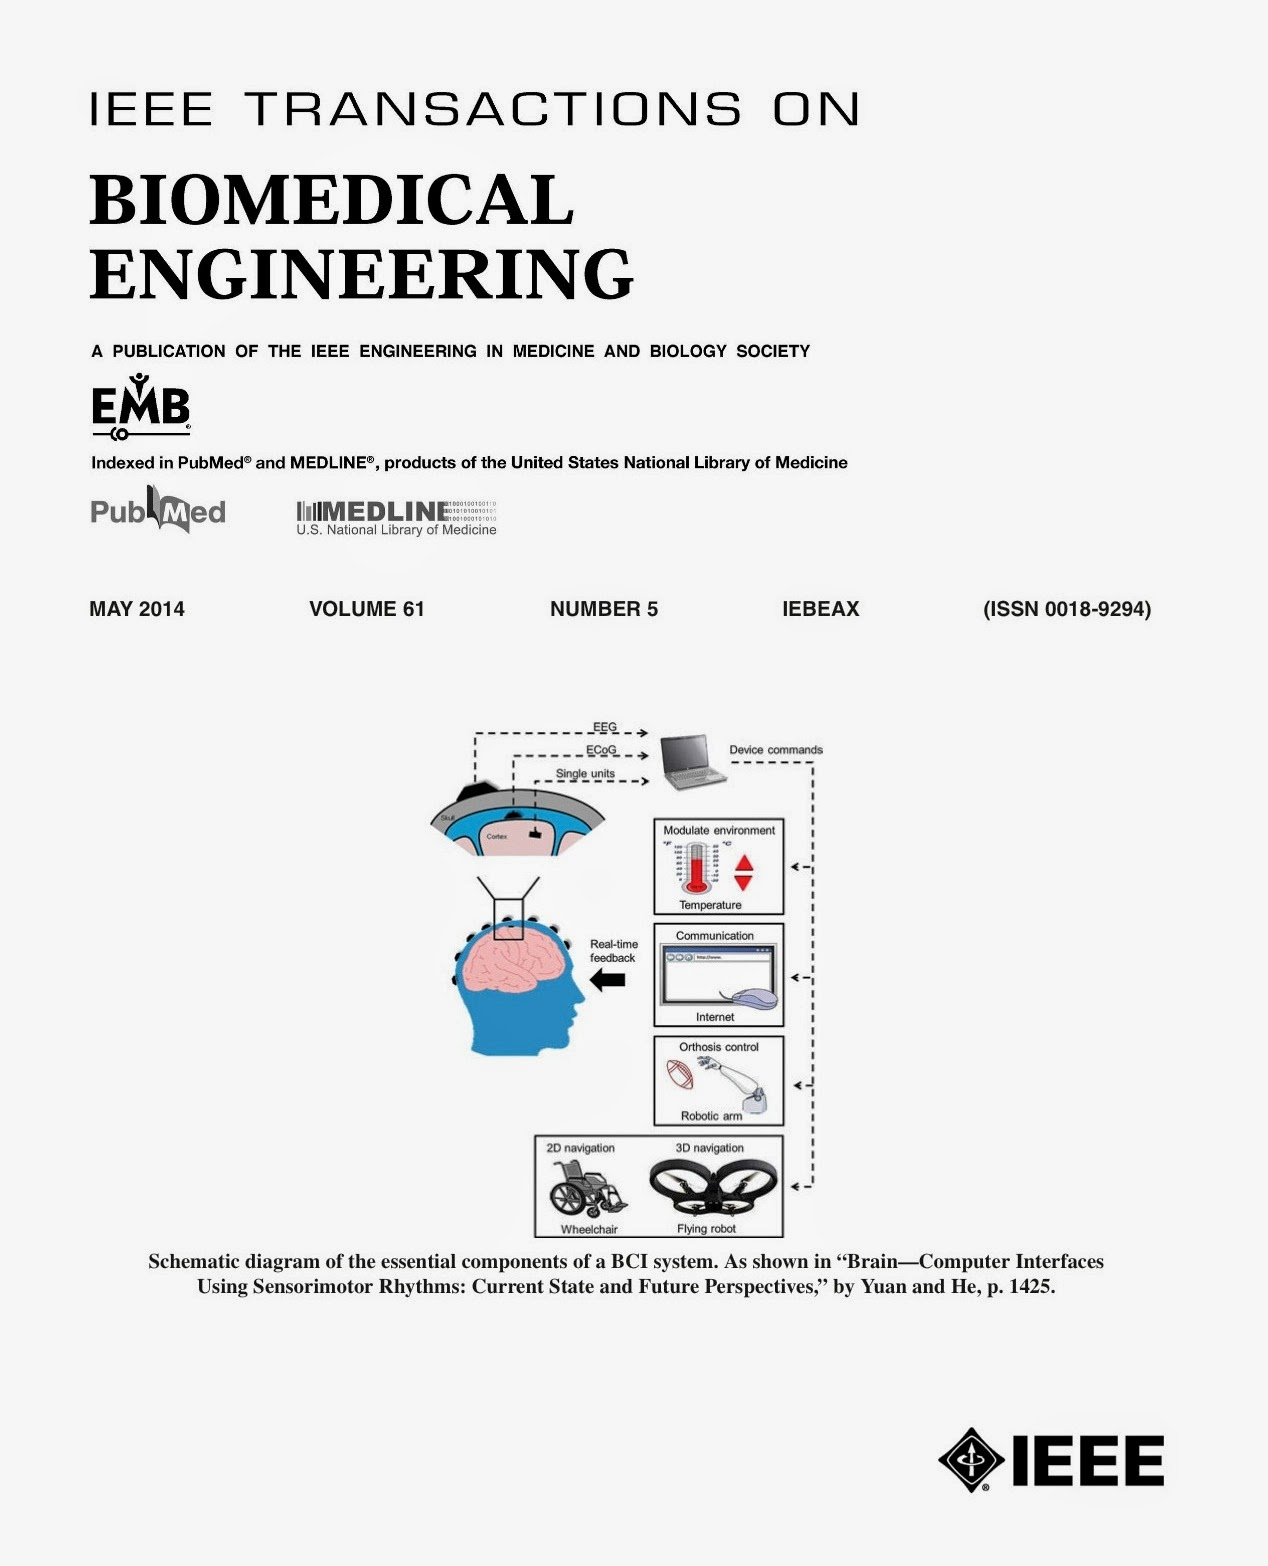 The cover of the journal IEEE Transactions on Biomedical Engineering.